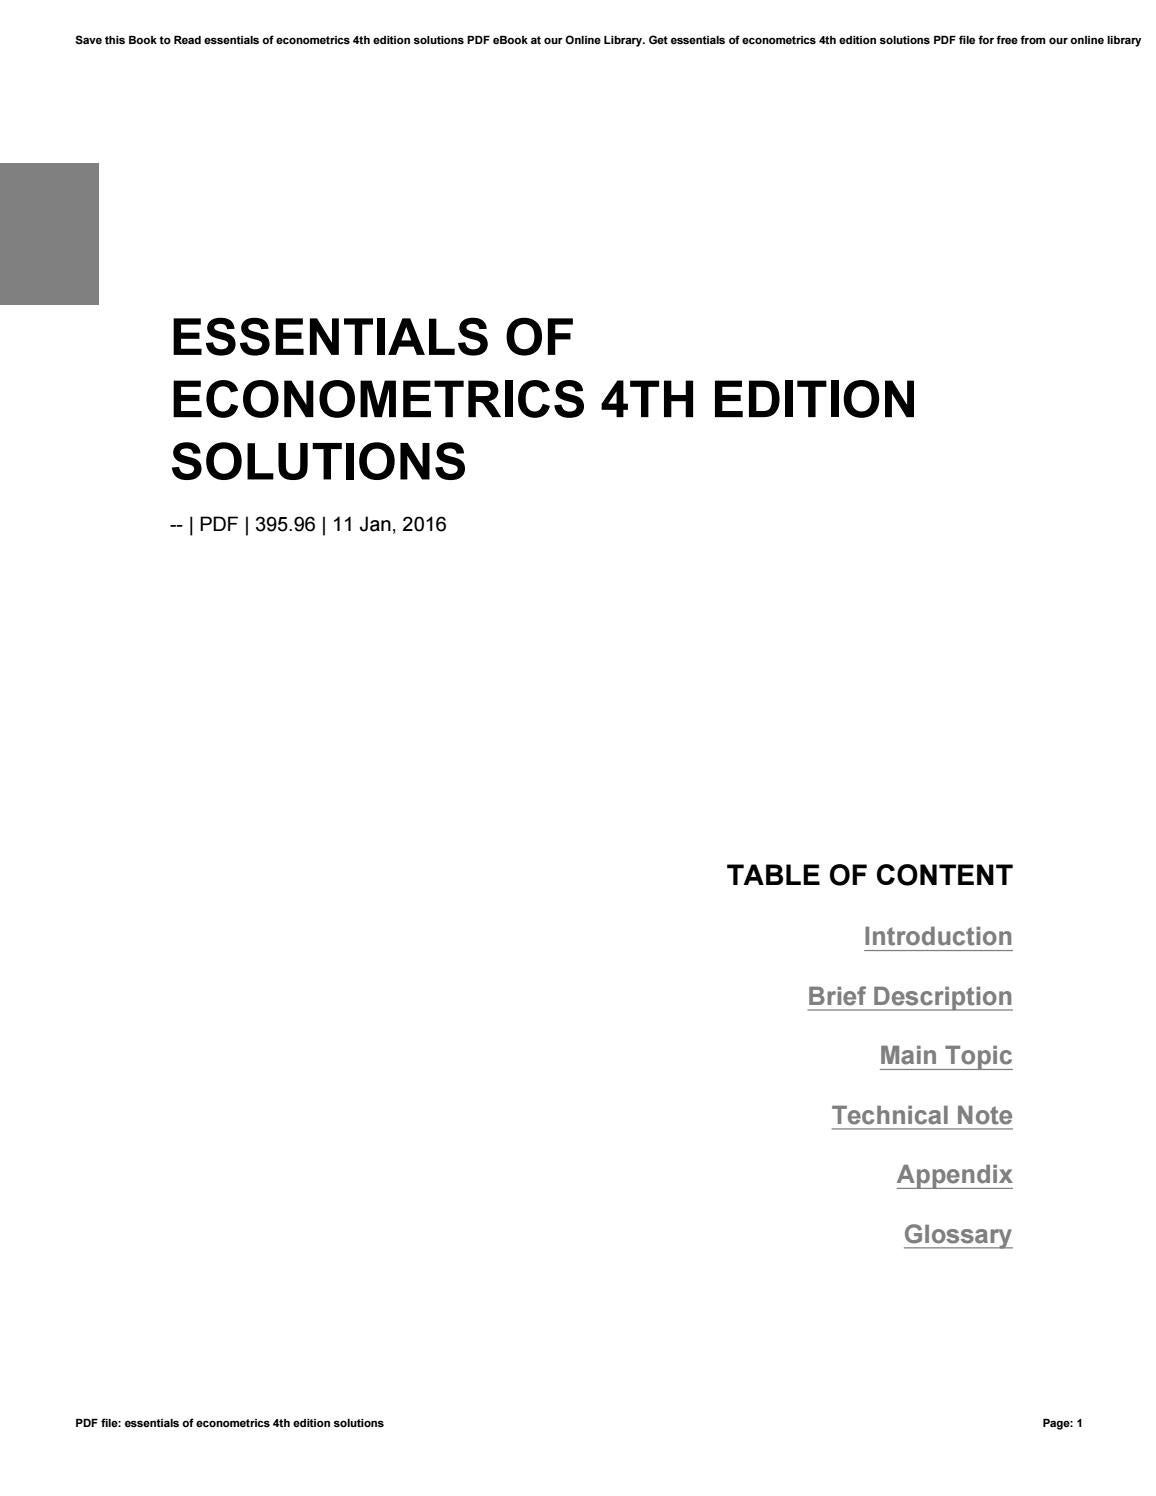 Essentials Of Econometrics 4th Edition Solutions By Mailed89 Issuu